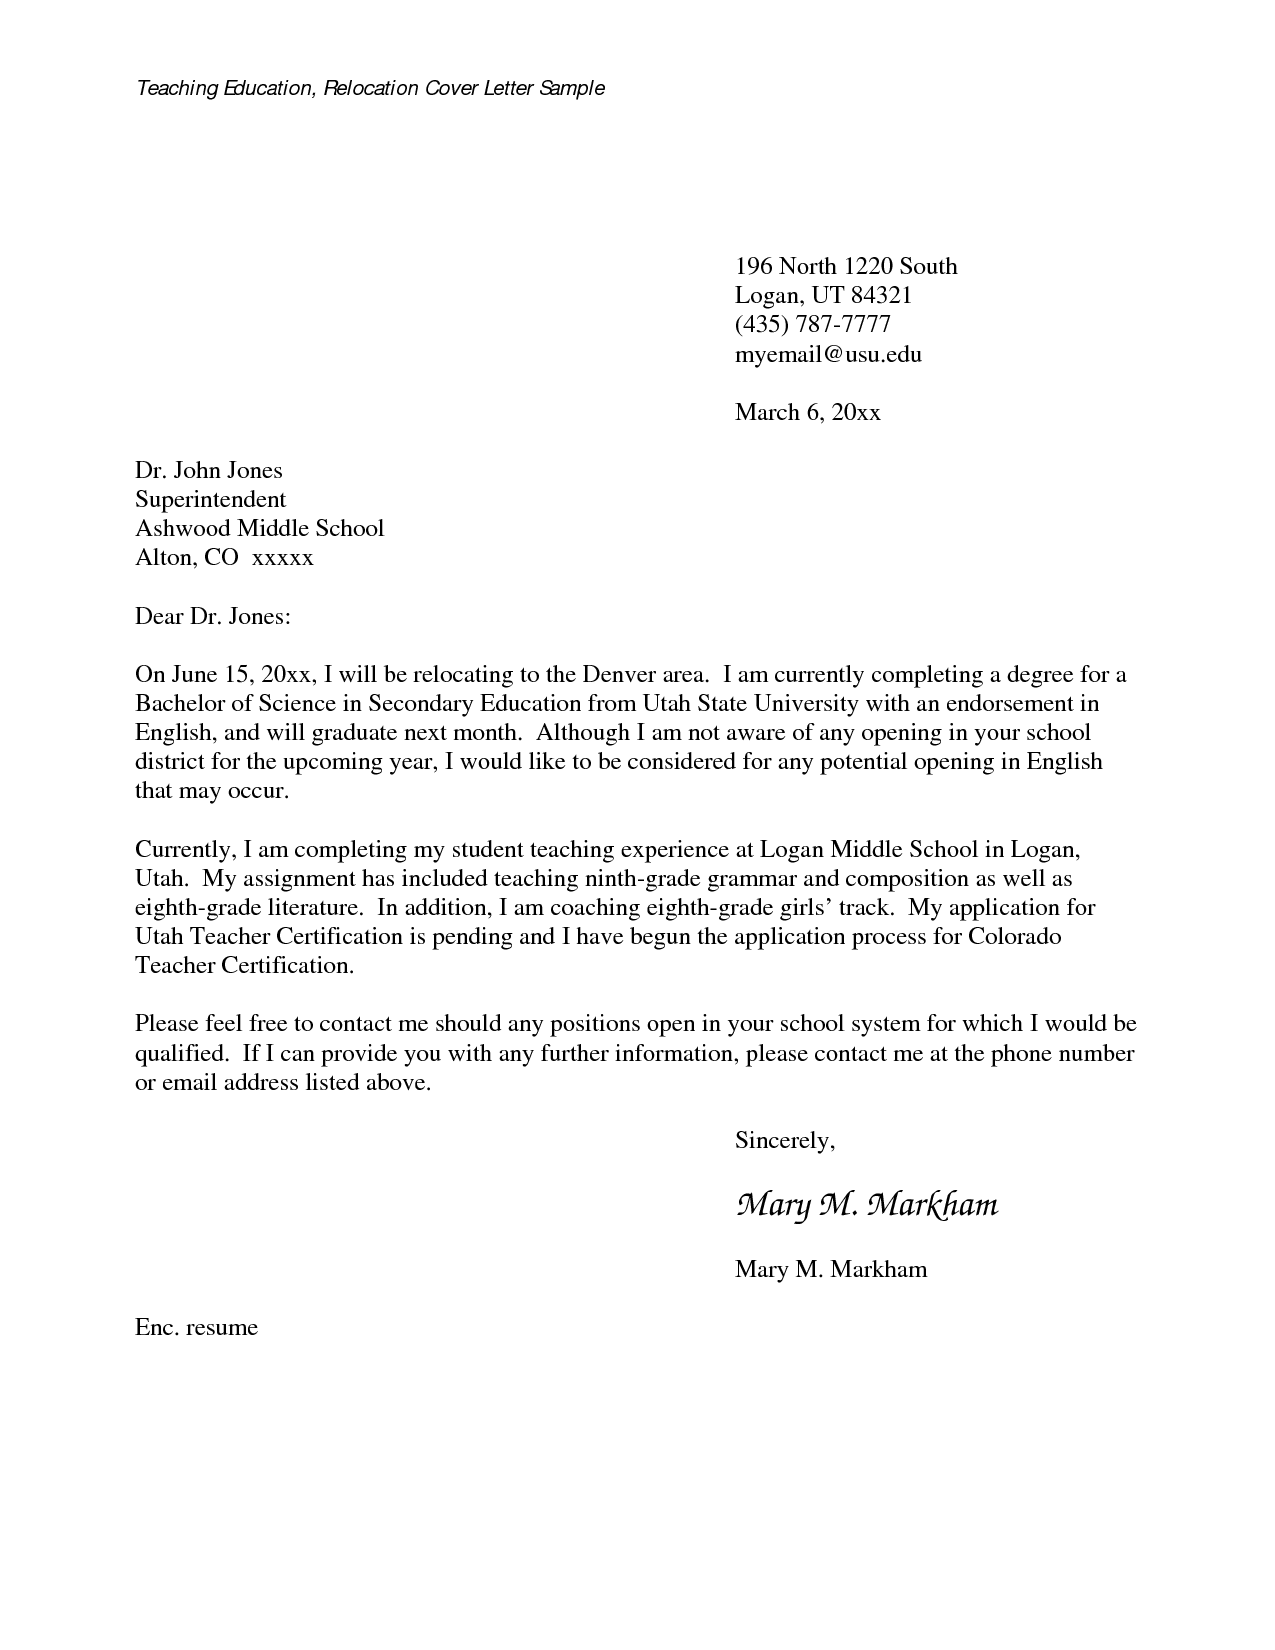 letters for teachers relocating medwebcomrelocation cover letter cover letter examples